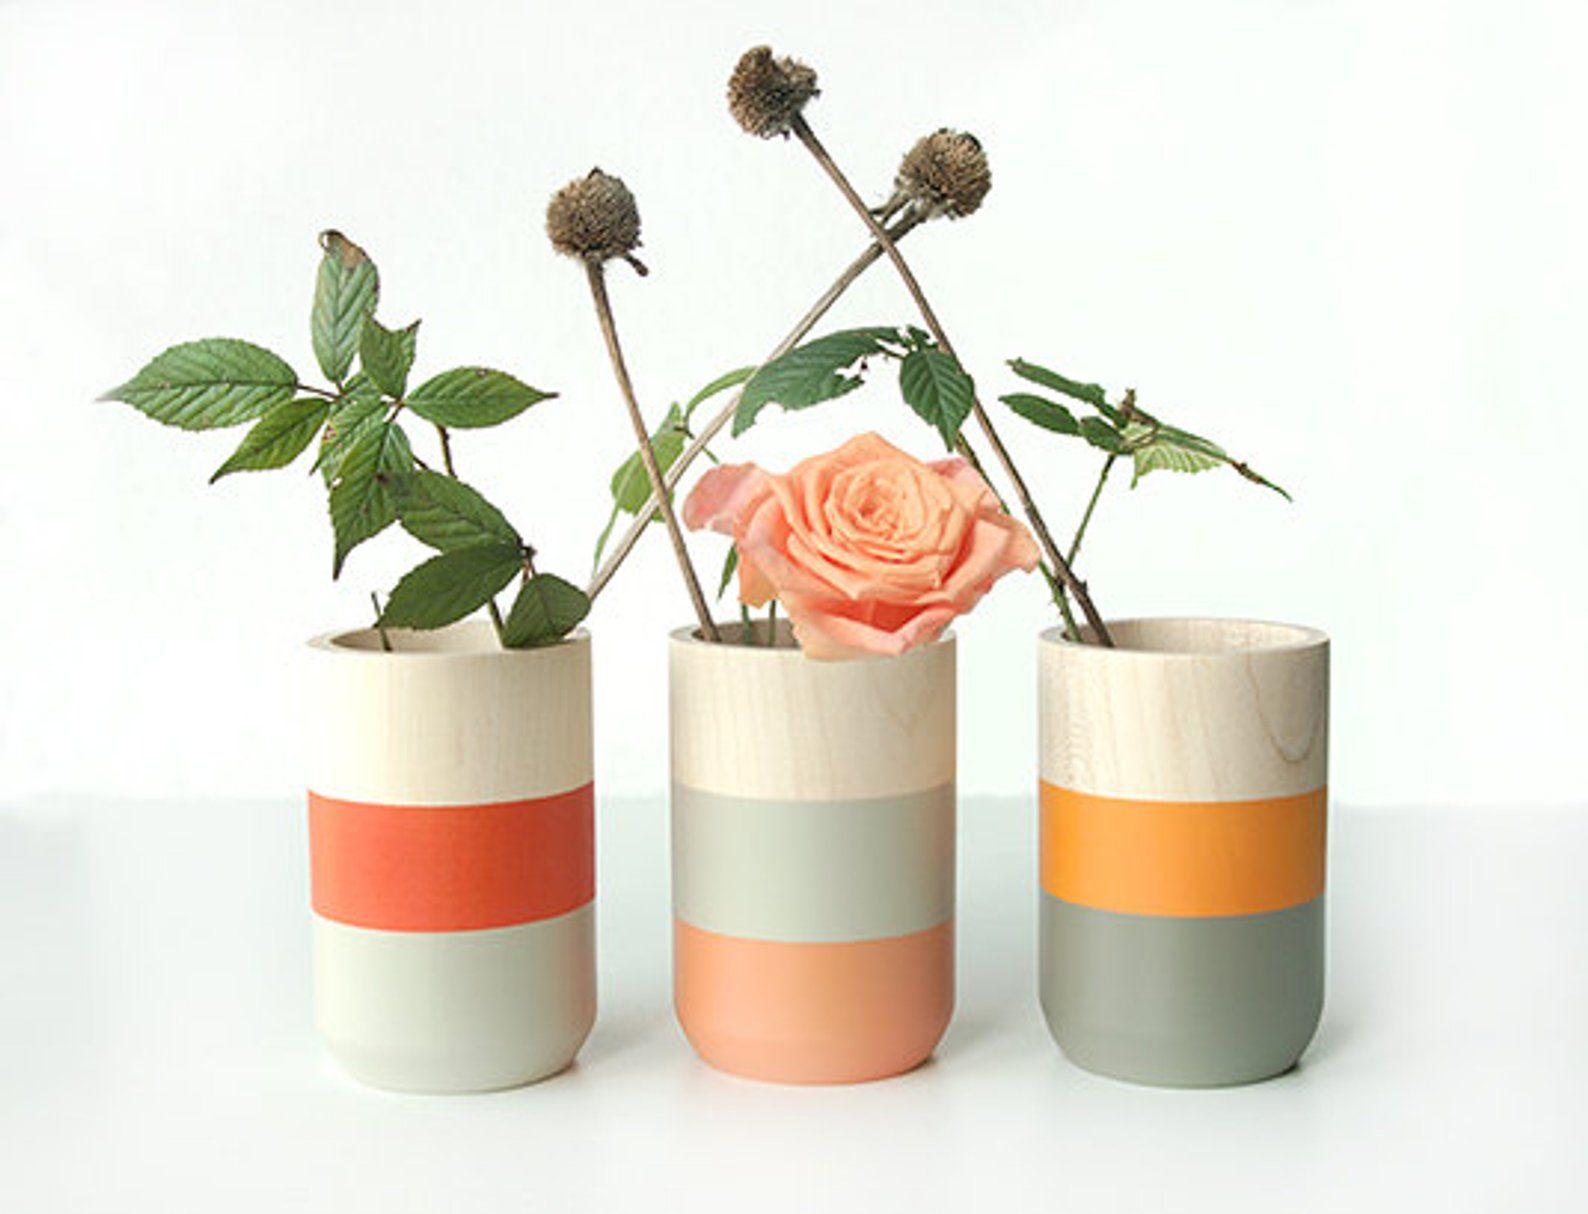 Set of 3 Painted Wooden Vases Home Decor By Shade on Shape